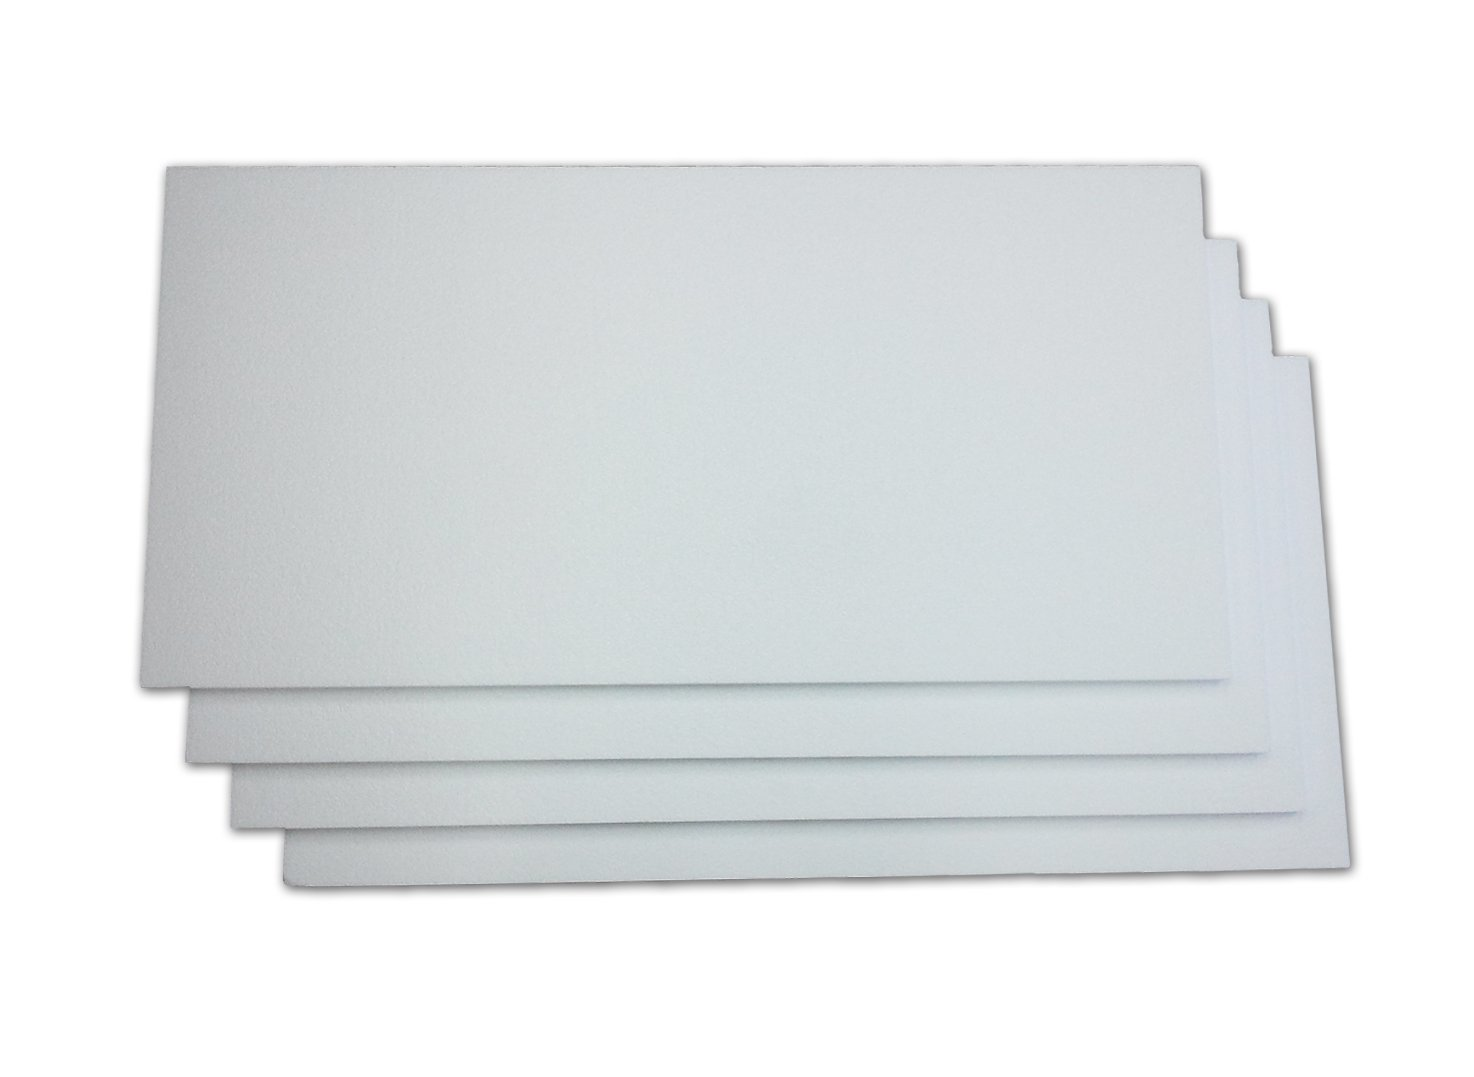 EcoBox 24 x 48 x 1 Inches Expanded Polystyrene Foam Sheet, 4-Pack (E-3222-4) by EcoBox